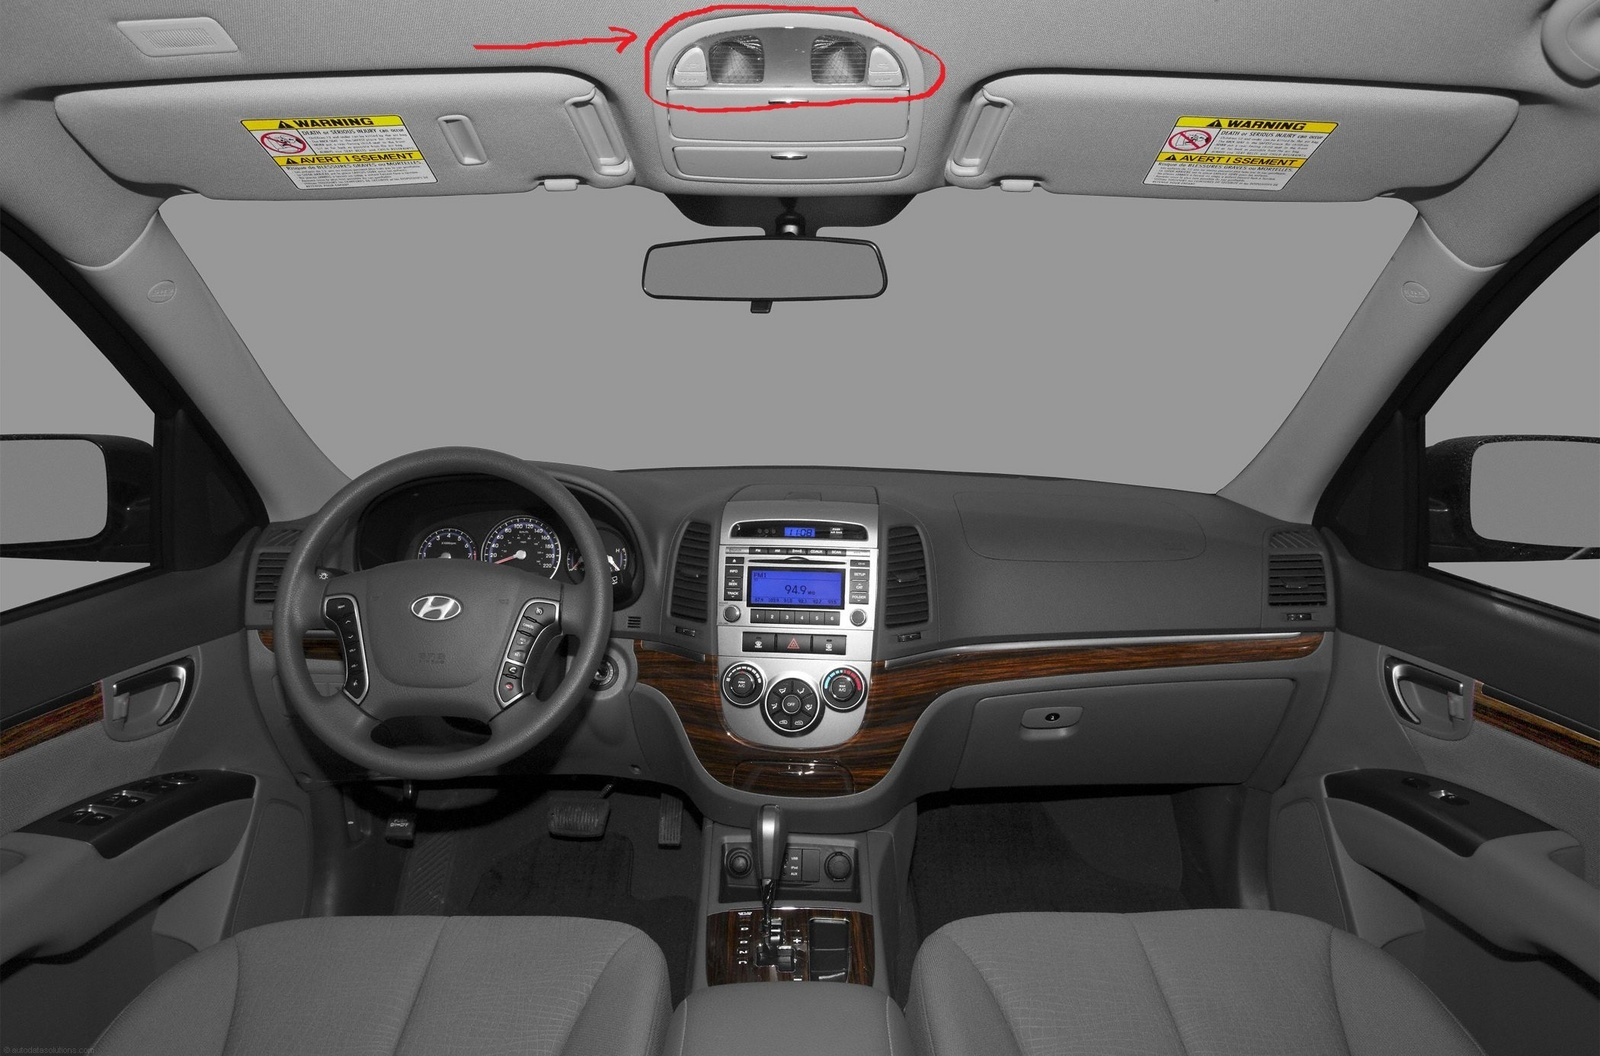 Hyundai Santa Fe Questions How Do I Turn On The Interior Lights To Go On Automatically For My